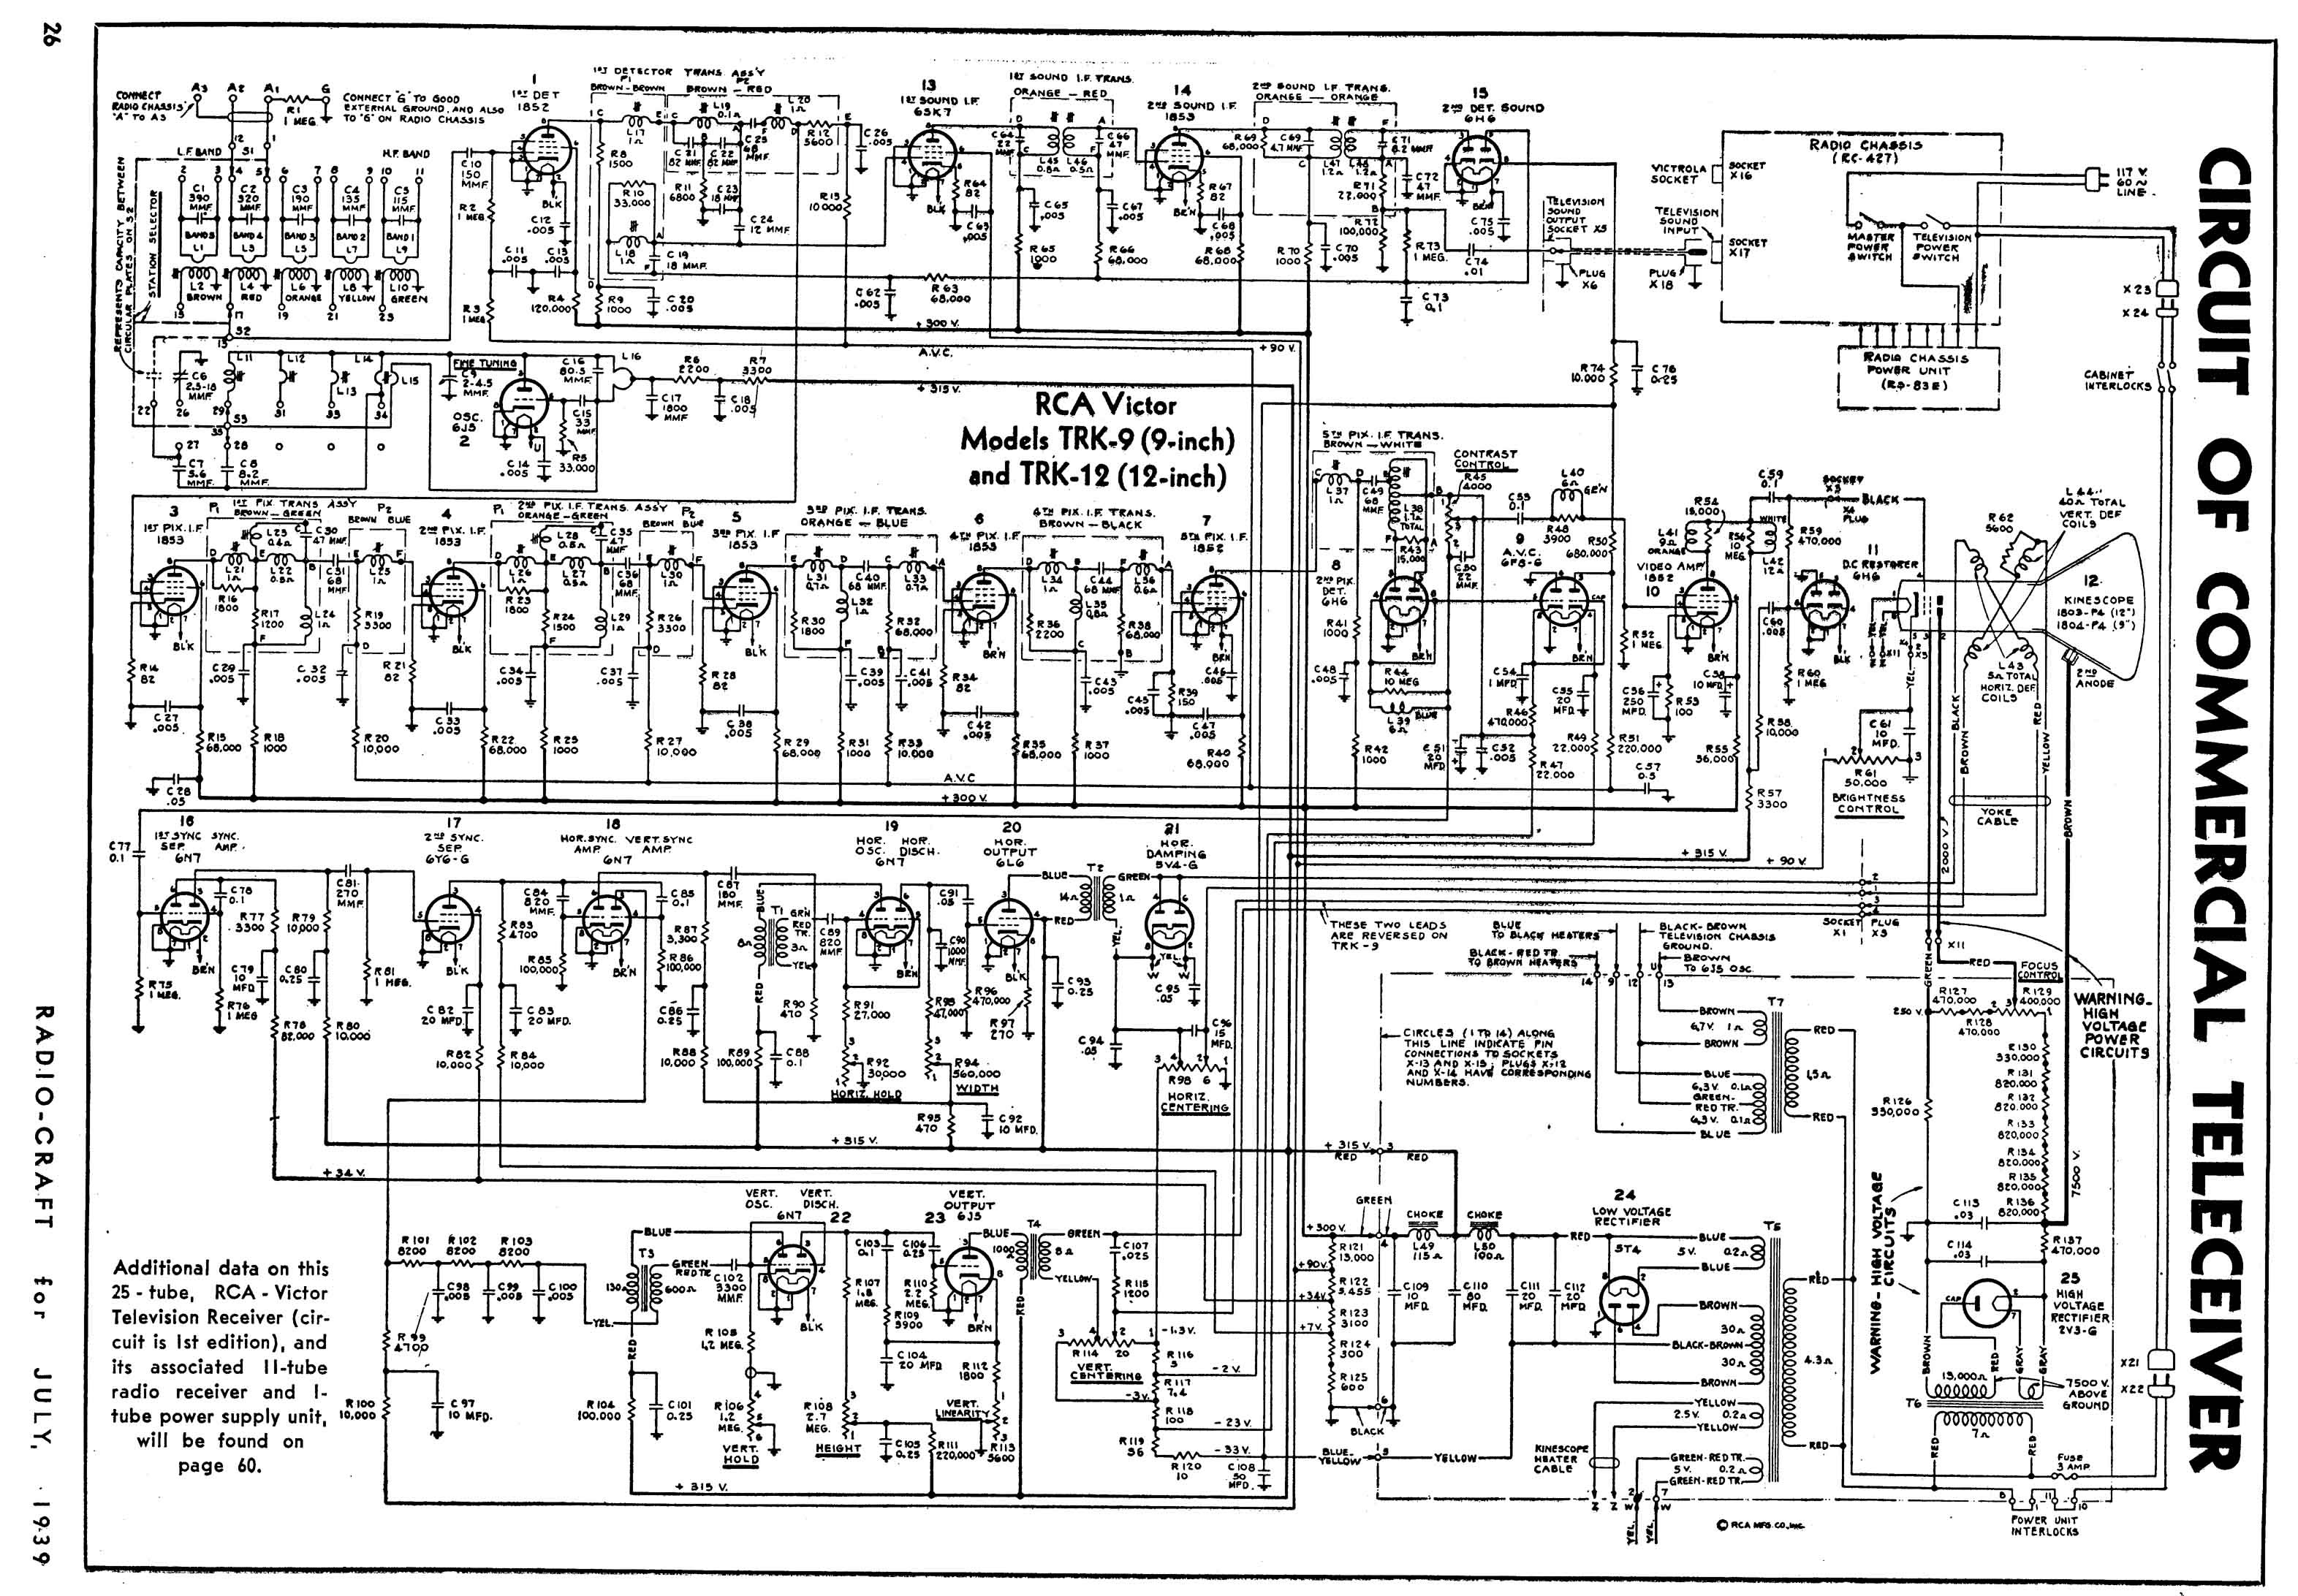 DIAGRAM> Lg Tv Schematic Diagrams FULL Version HD Quality Schematic Diagrams  - FISHBONEDIAGRAMMEDICINE.CRABAVEZZANO.ITfishbonediagrammedicine.crabavezzano.it